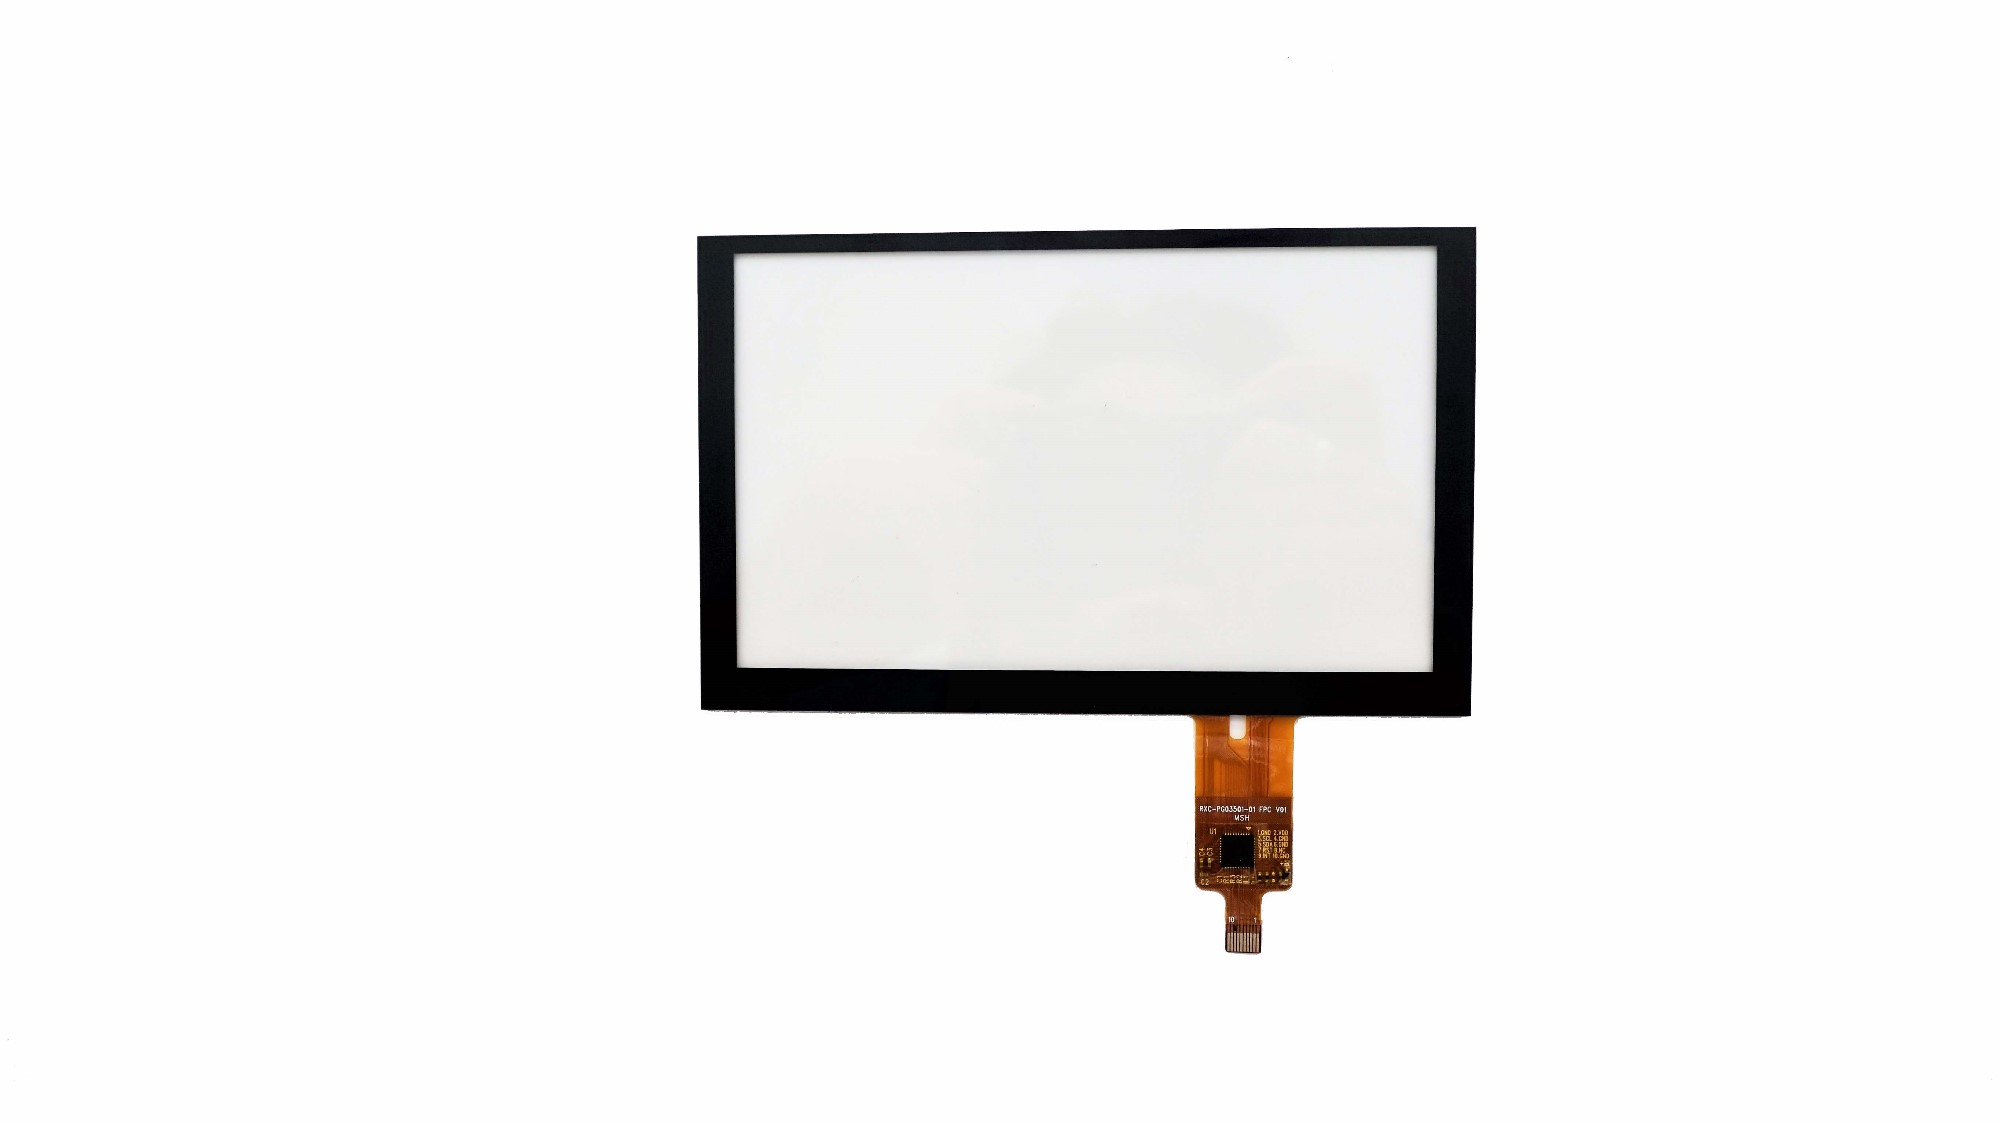 5.0 Inch Projected Capacitive Touch Screen Panel